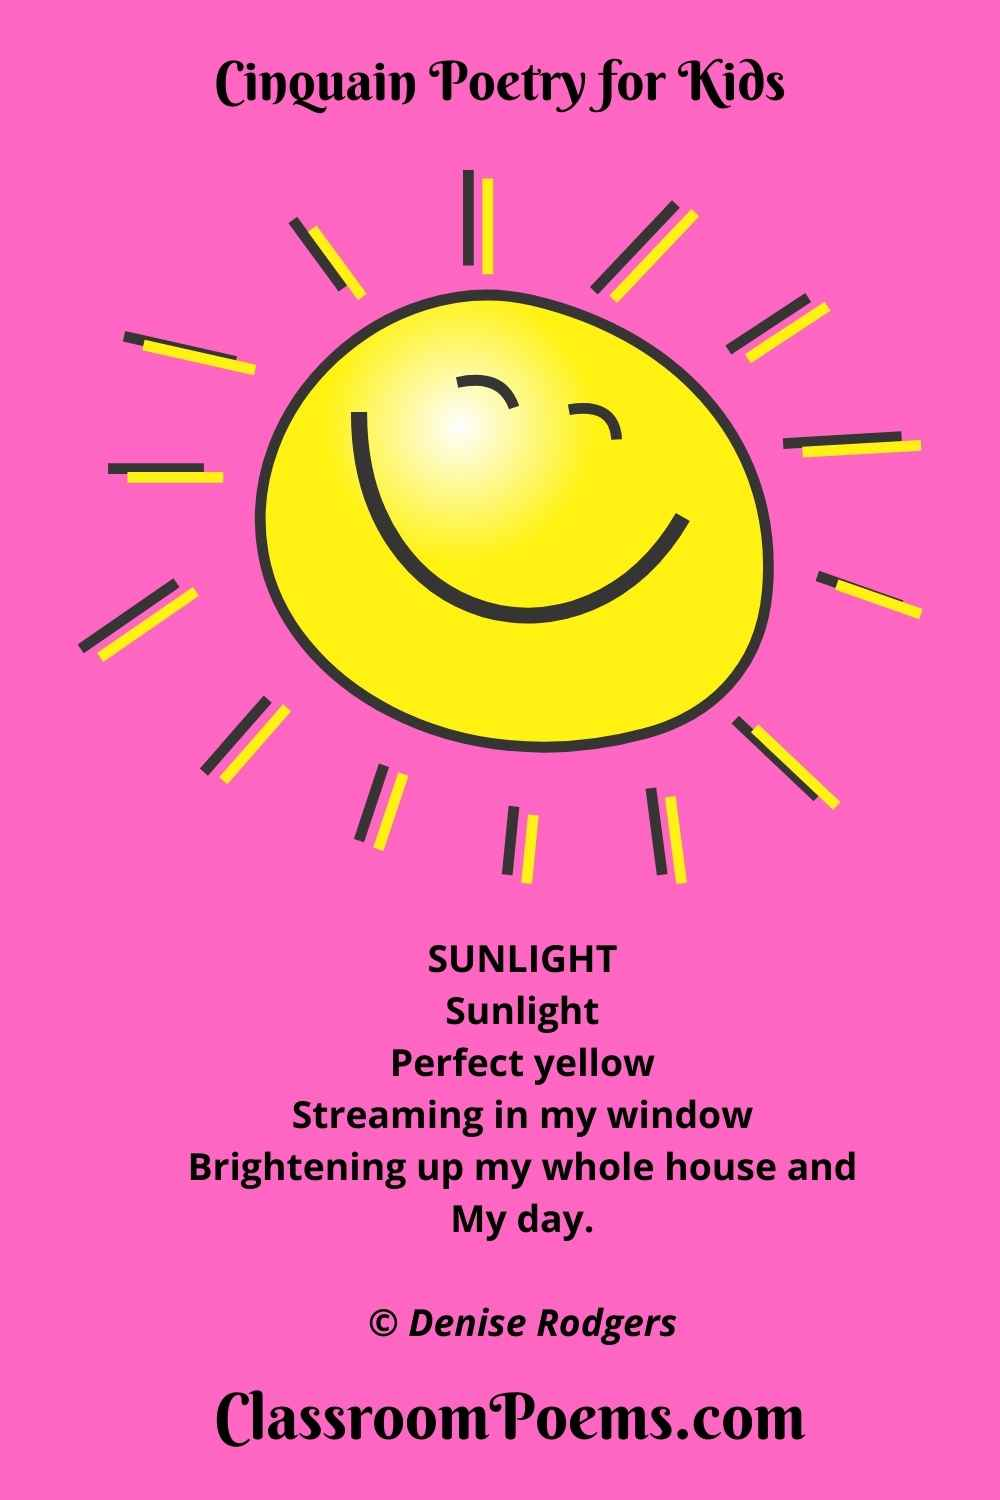 SUNLIGHT Cinquain Poem by the Poetry Lady Denise Rodgers on ClassroomPoems.com.